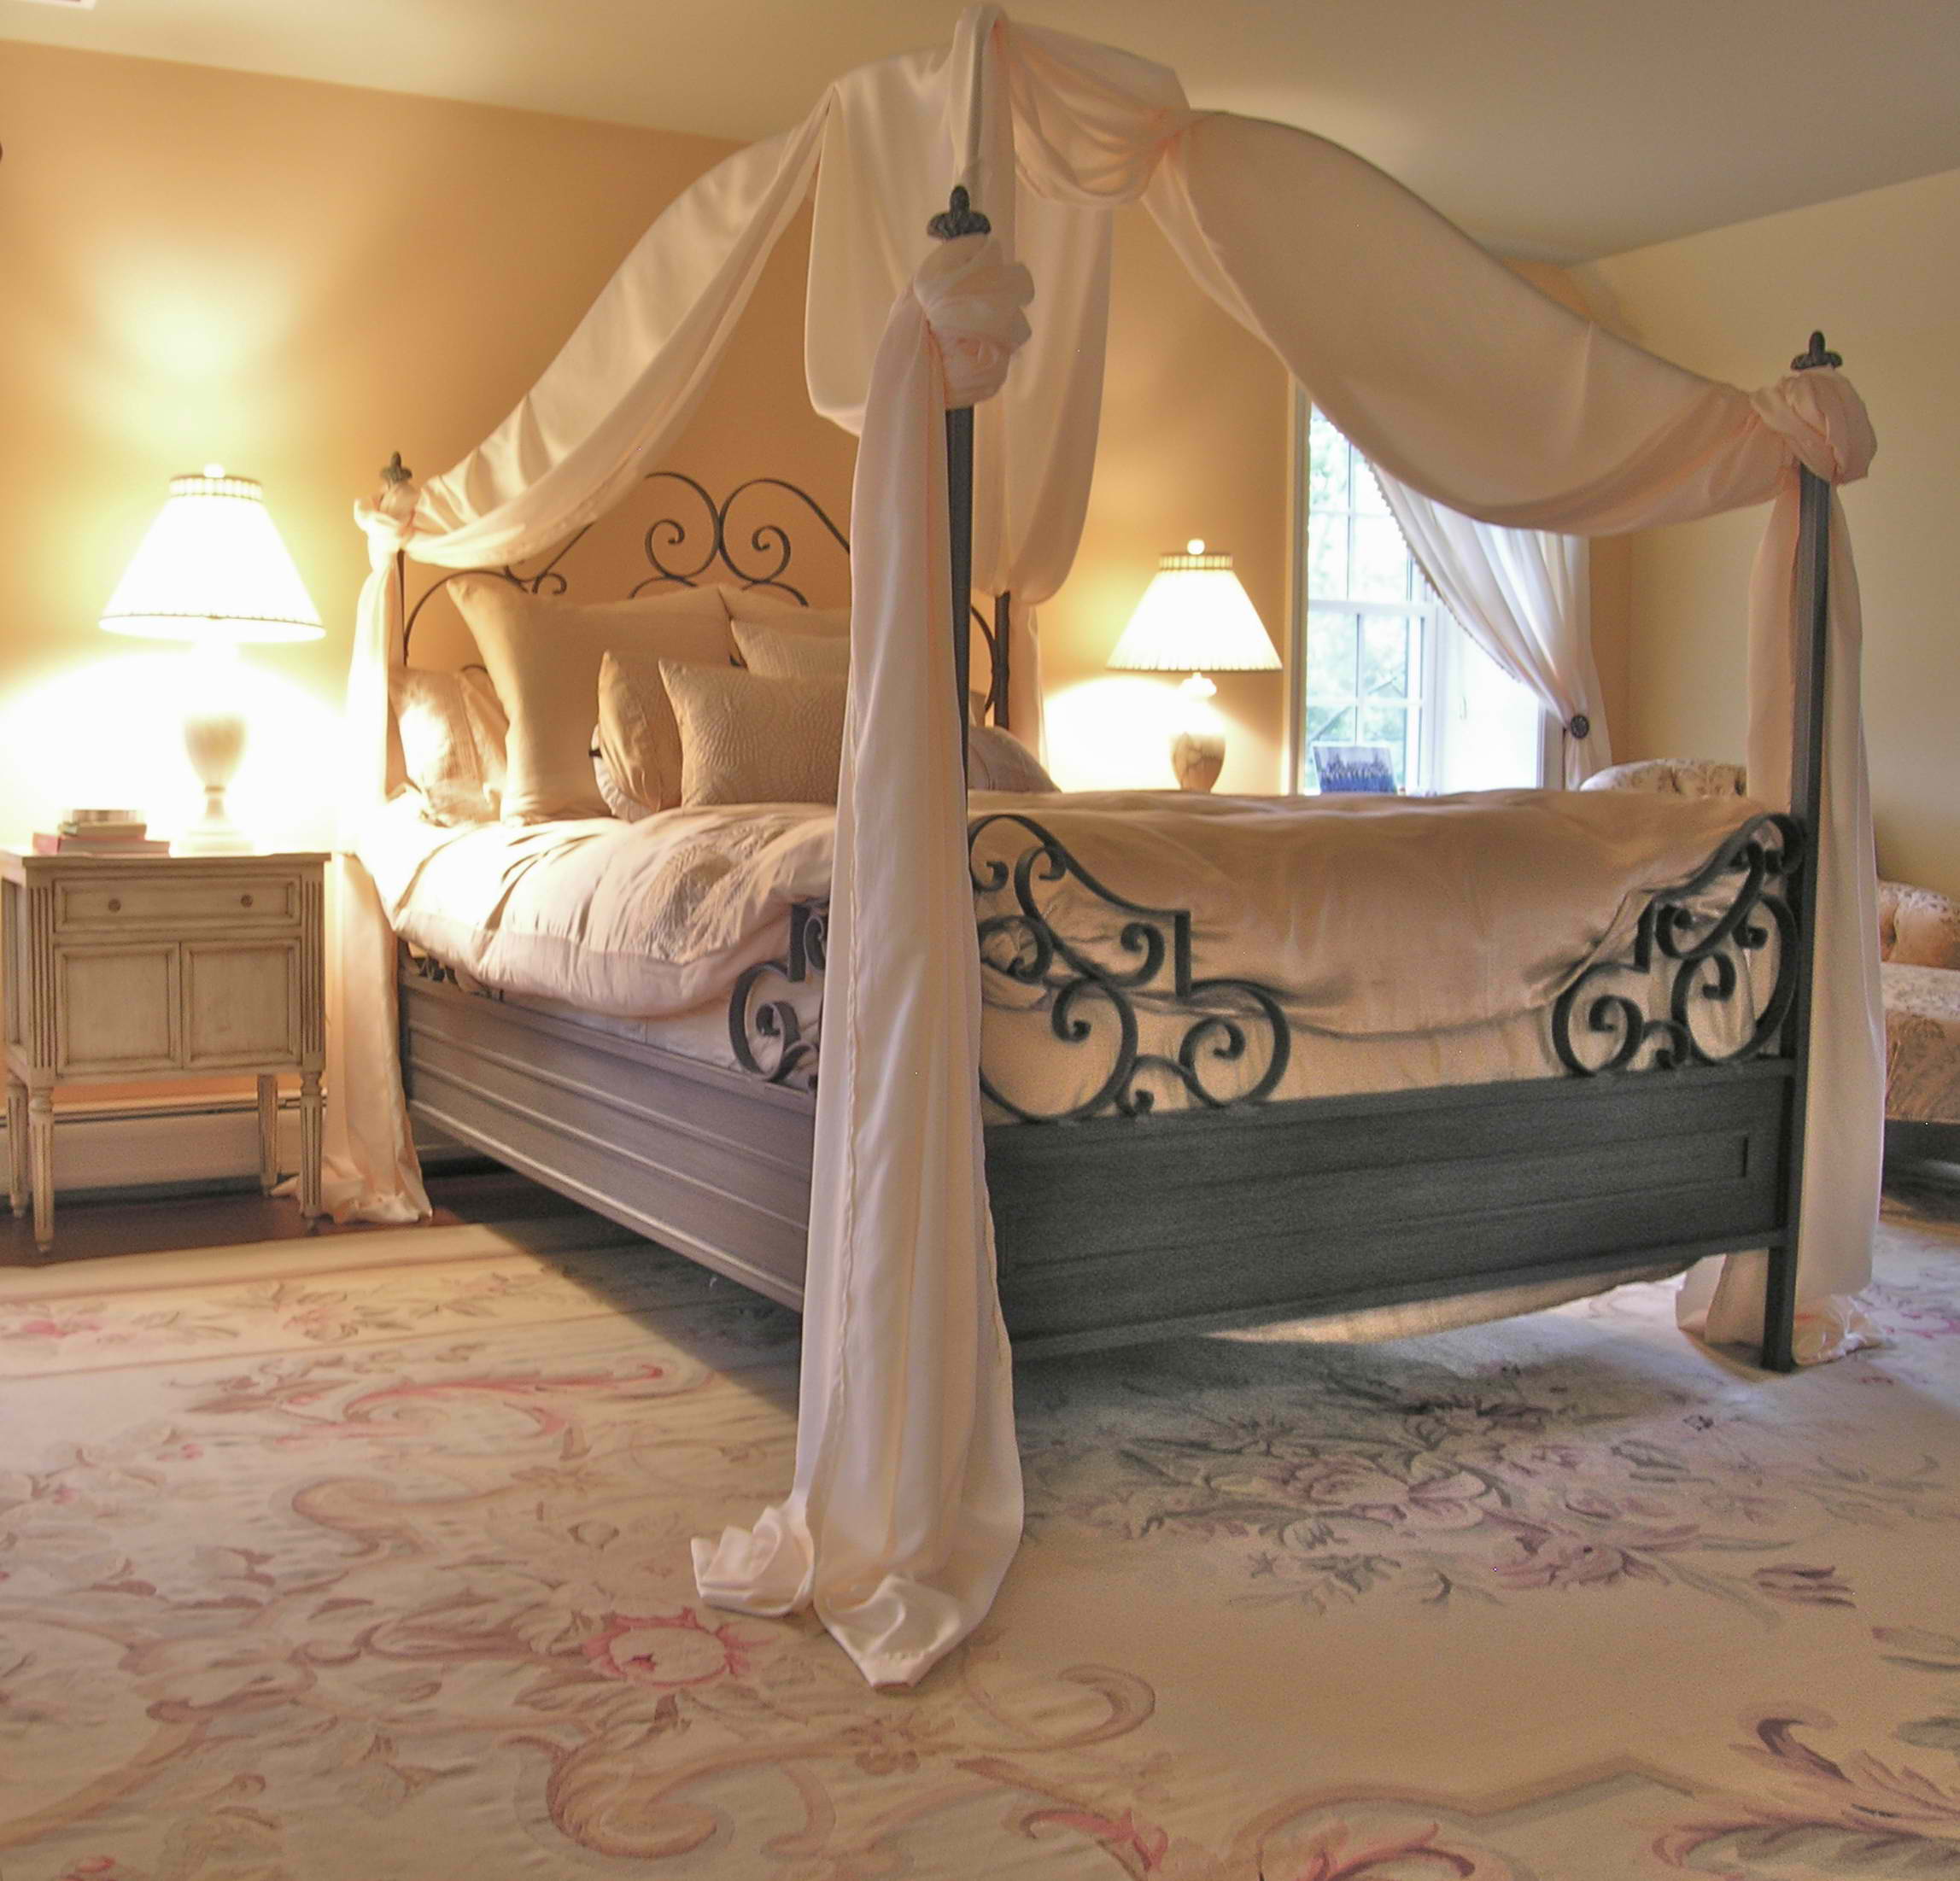 Bedroom Decorating Ideas: 20 Romantic Bedroom Ideas